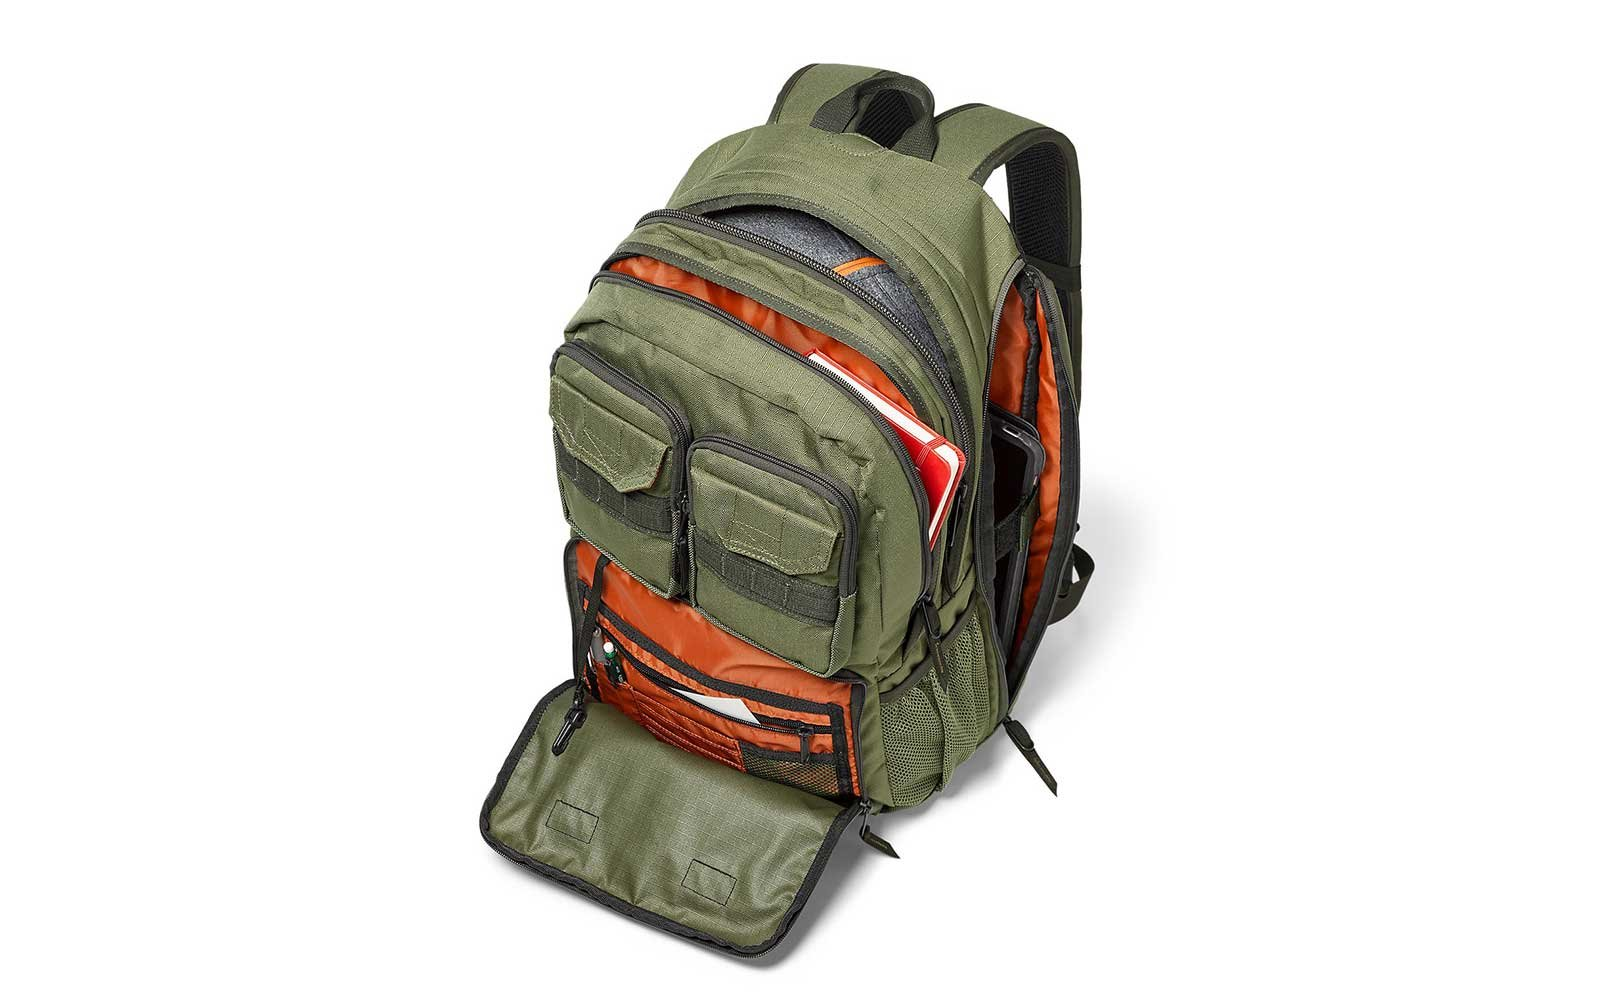 Green Eddie Bauer waterproof backpack